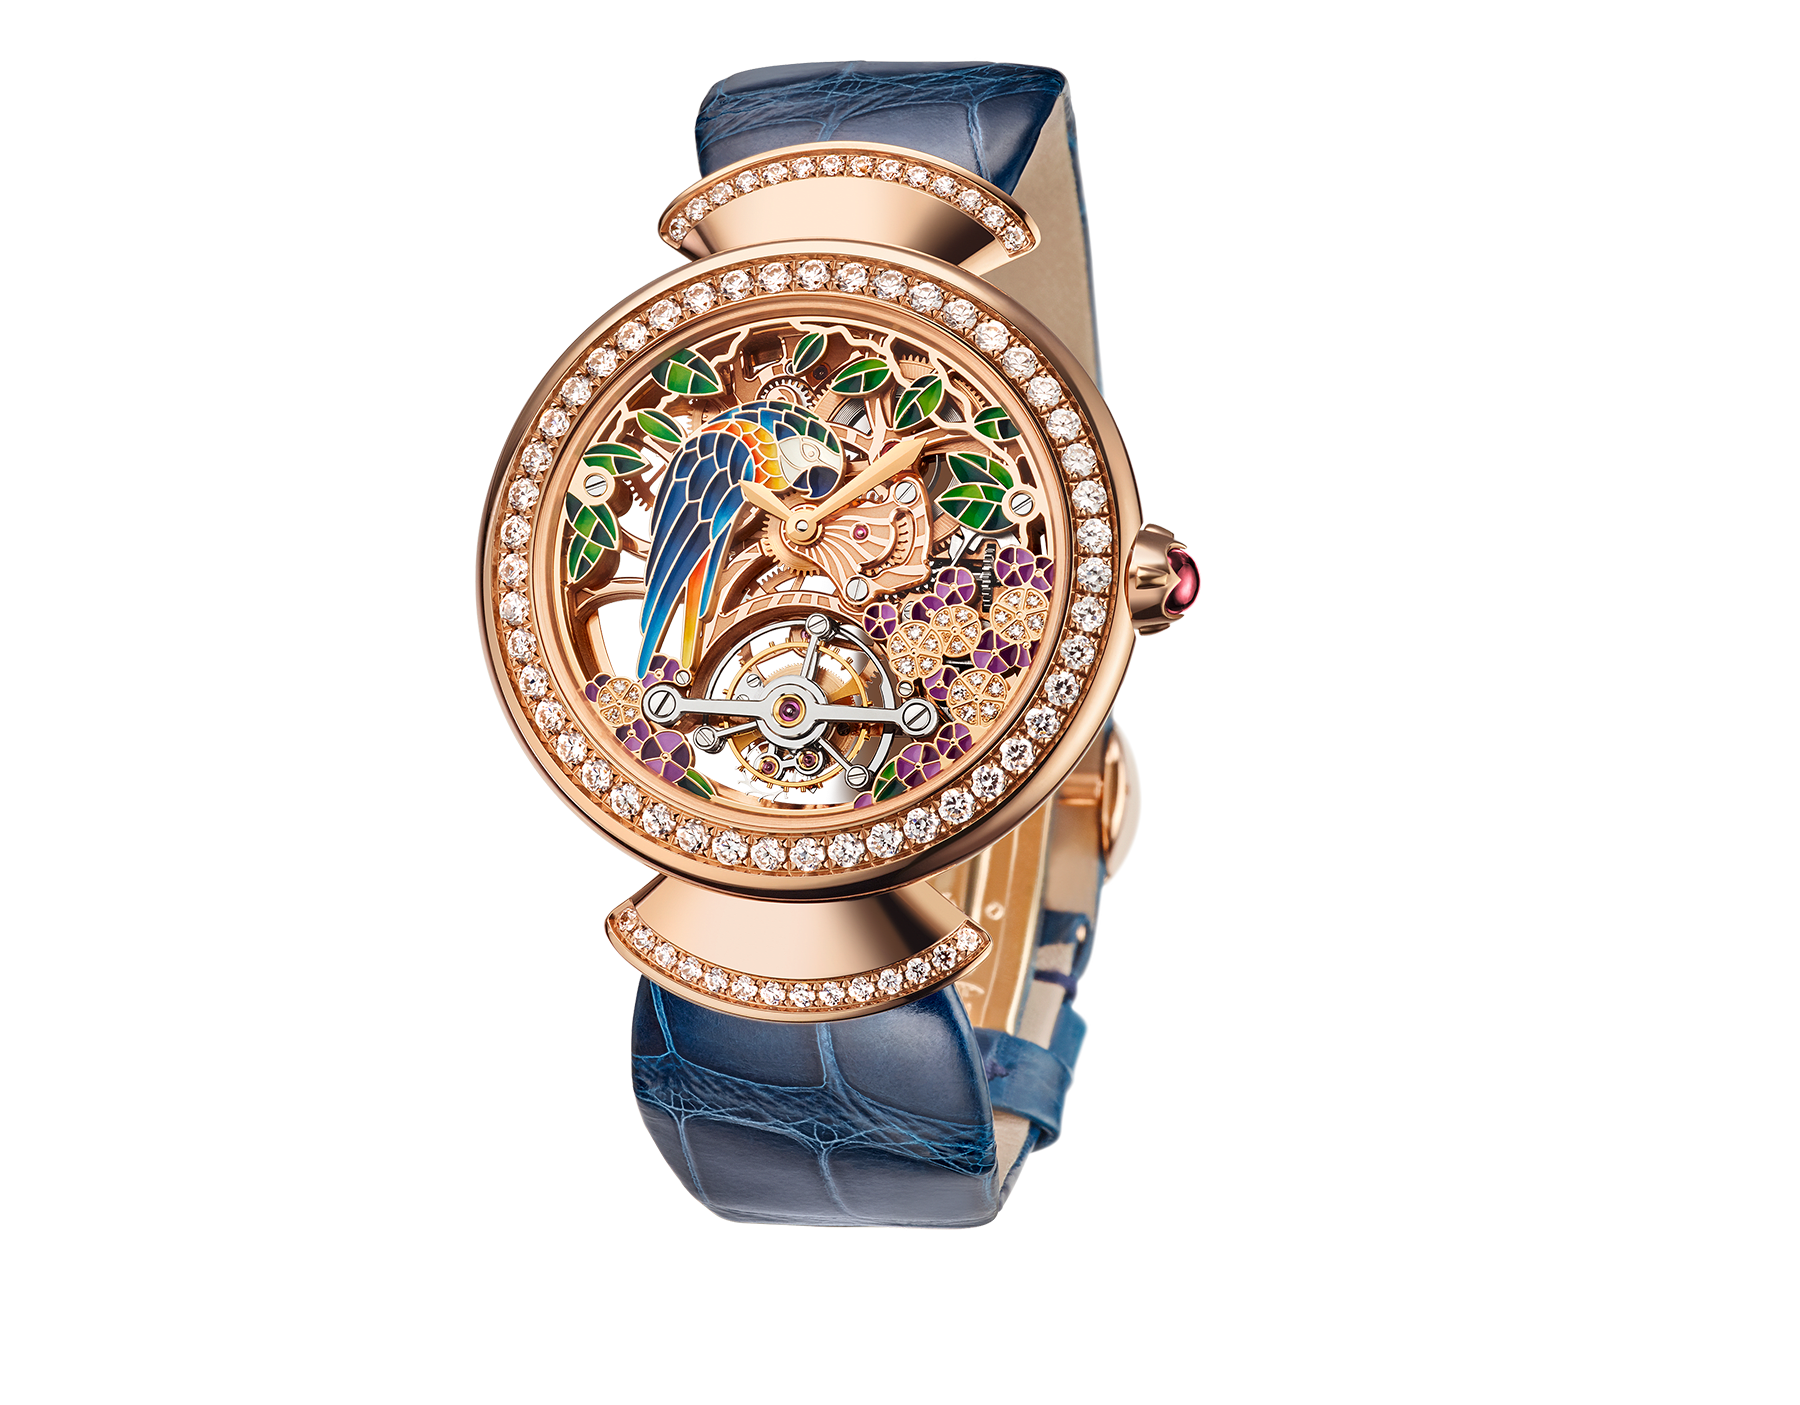 DIVAS' DREAM watch with 18 kt rose gold mechanical manufacture skeletonized movement and tourbillon. 18 kt rose gold case set with brilliant-cut diamonds, dial with hand painted parrot, flowers and leaves set with diamonds and blue alligator bracelet 102542 image 1